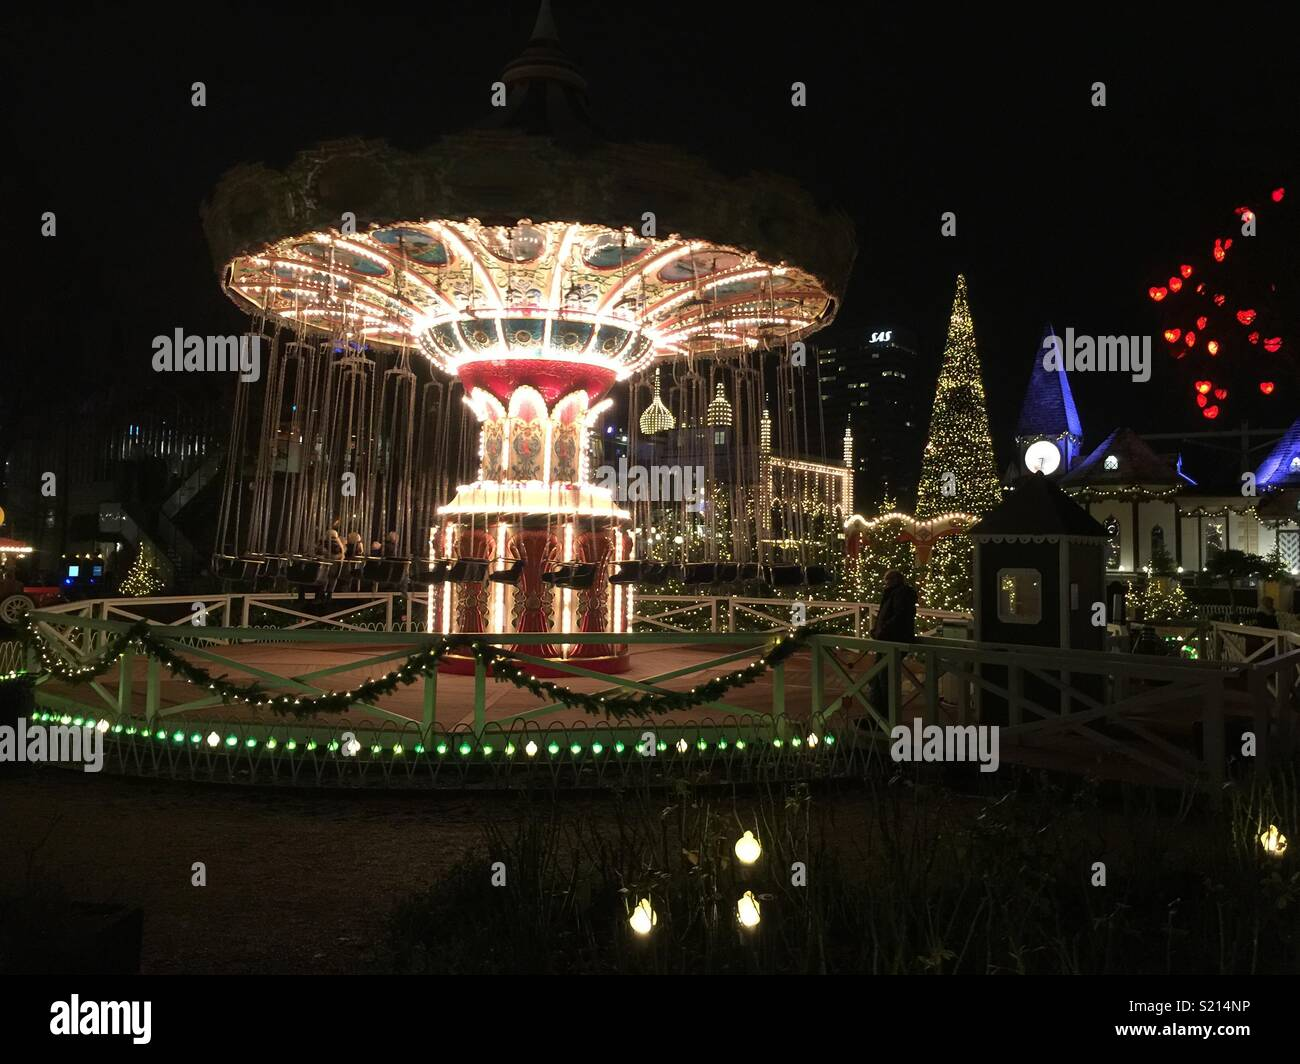 Carousel Garden Stock Photos & Carousel Garden Stock Images - Alamy